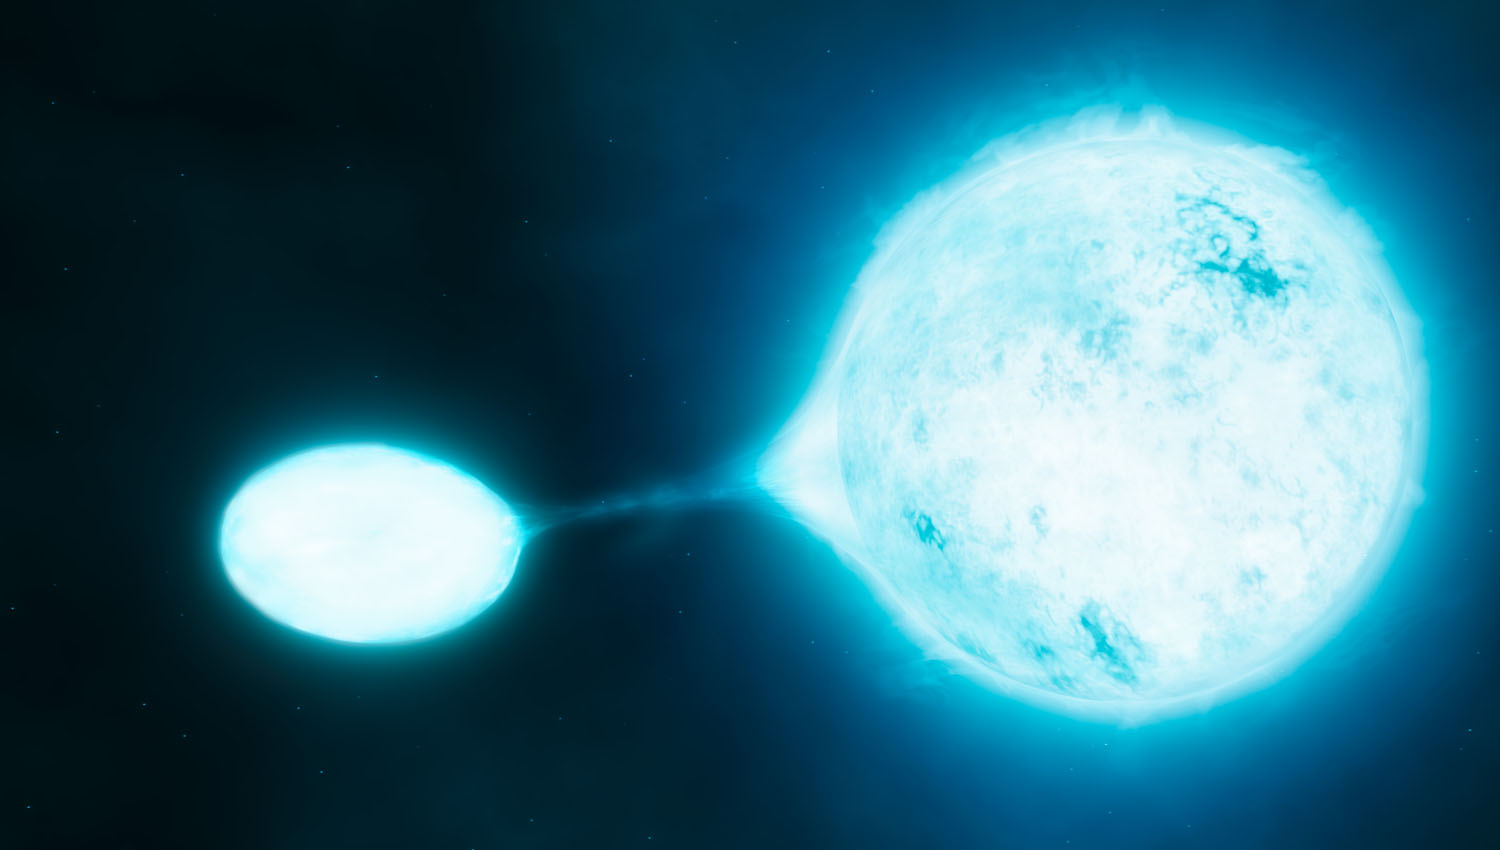 ESO's Very Large Telescope has revealed that the hottest and brightest stars, which are known as O stars